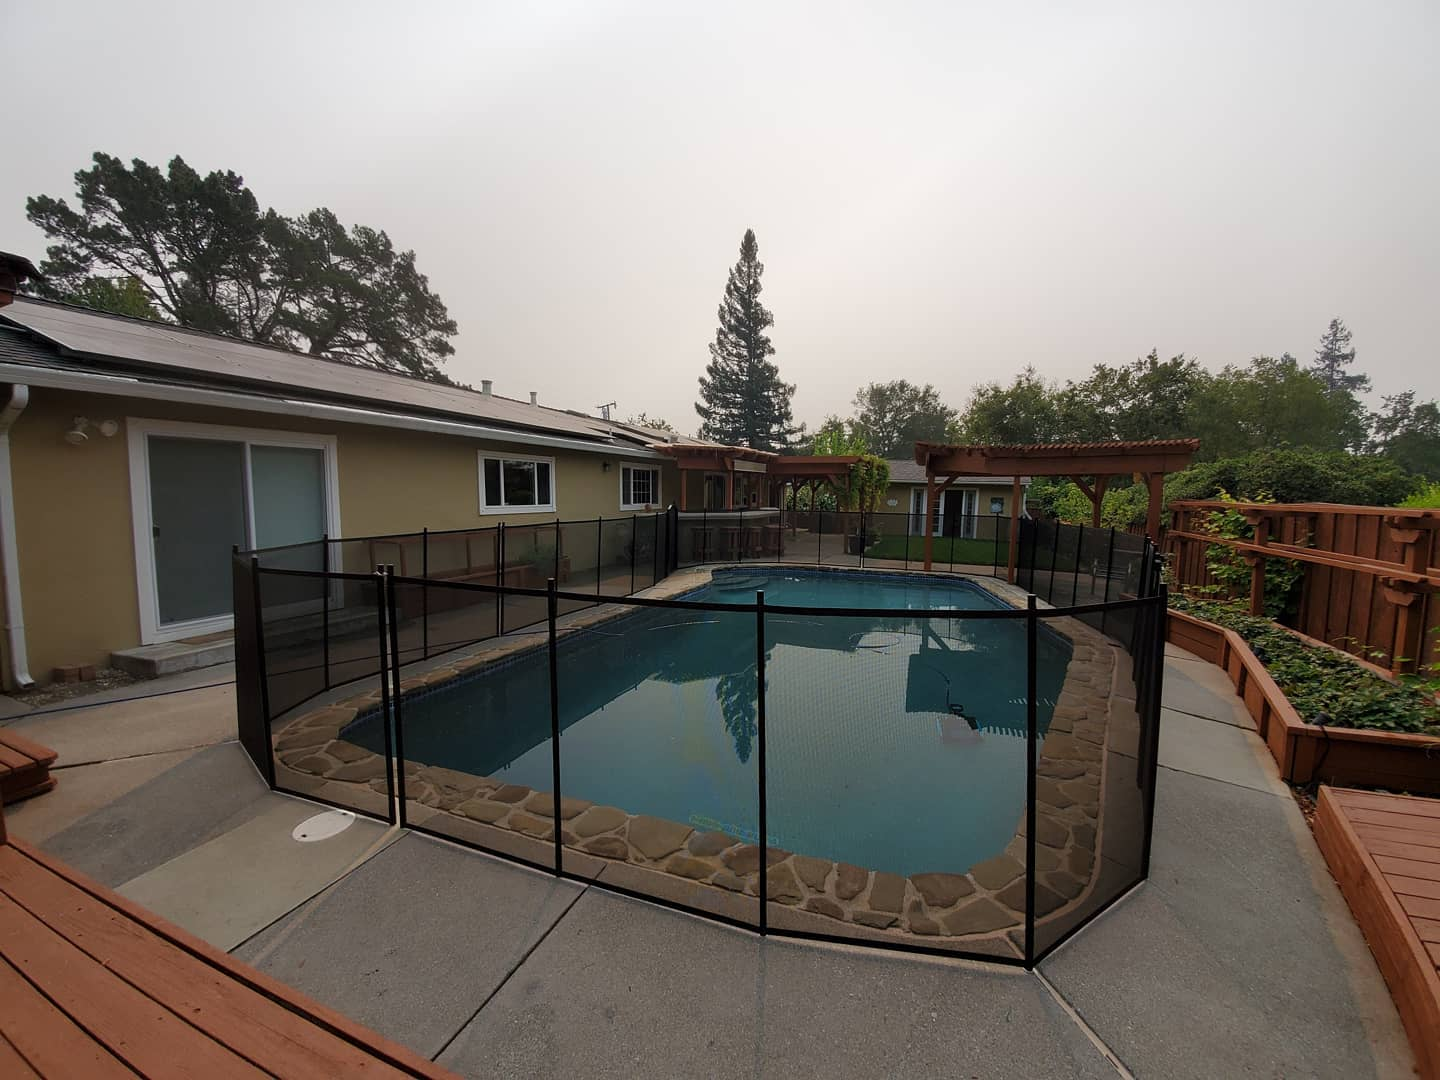 Life Saver mesh pool fence installed in Modesto, CA